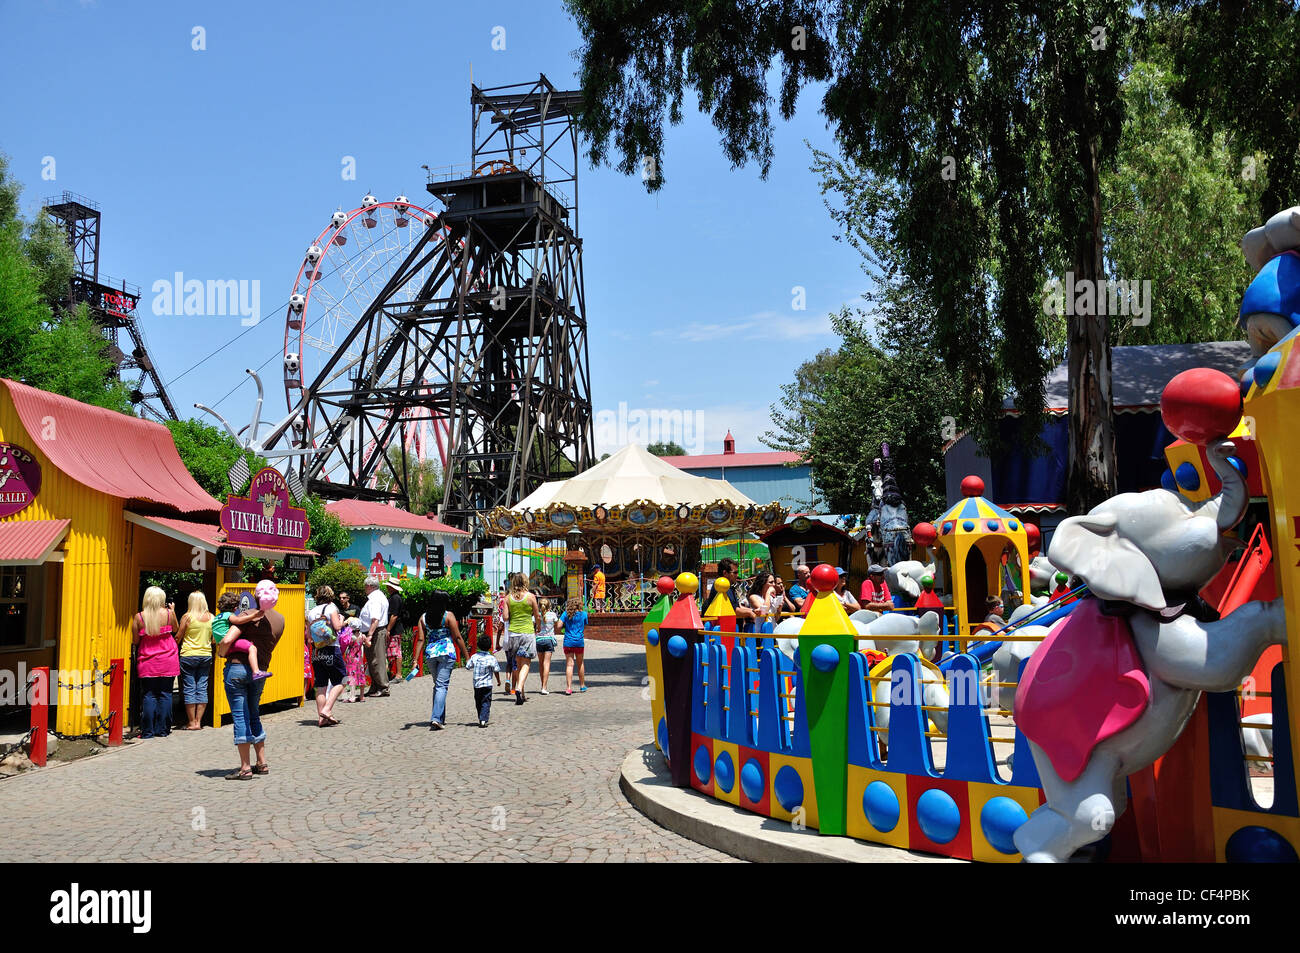 Gold Reef City >> Coal Winding Gear And Children S Rides At Gold Reef City Theme Park